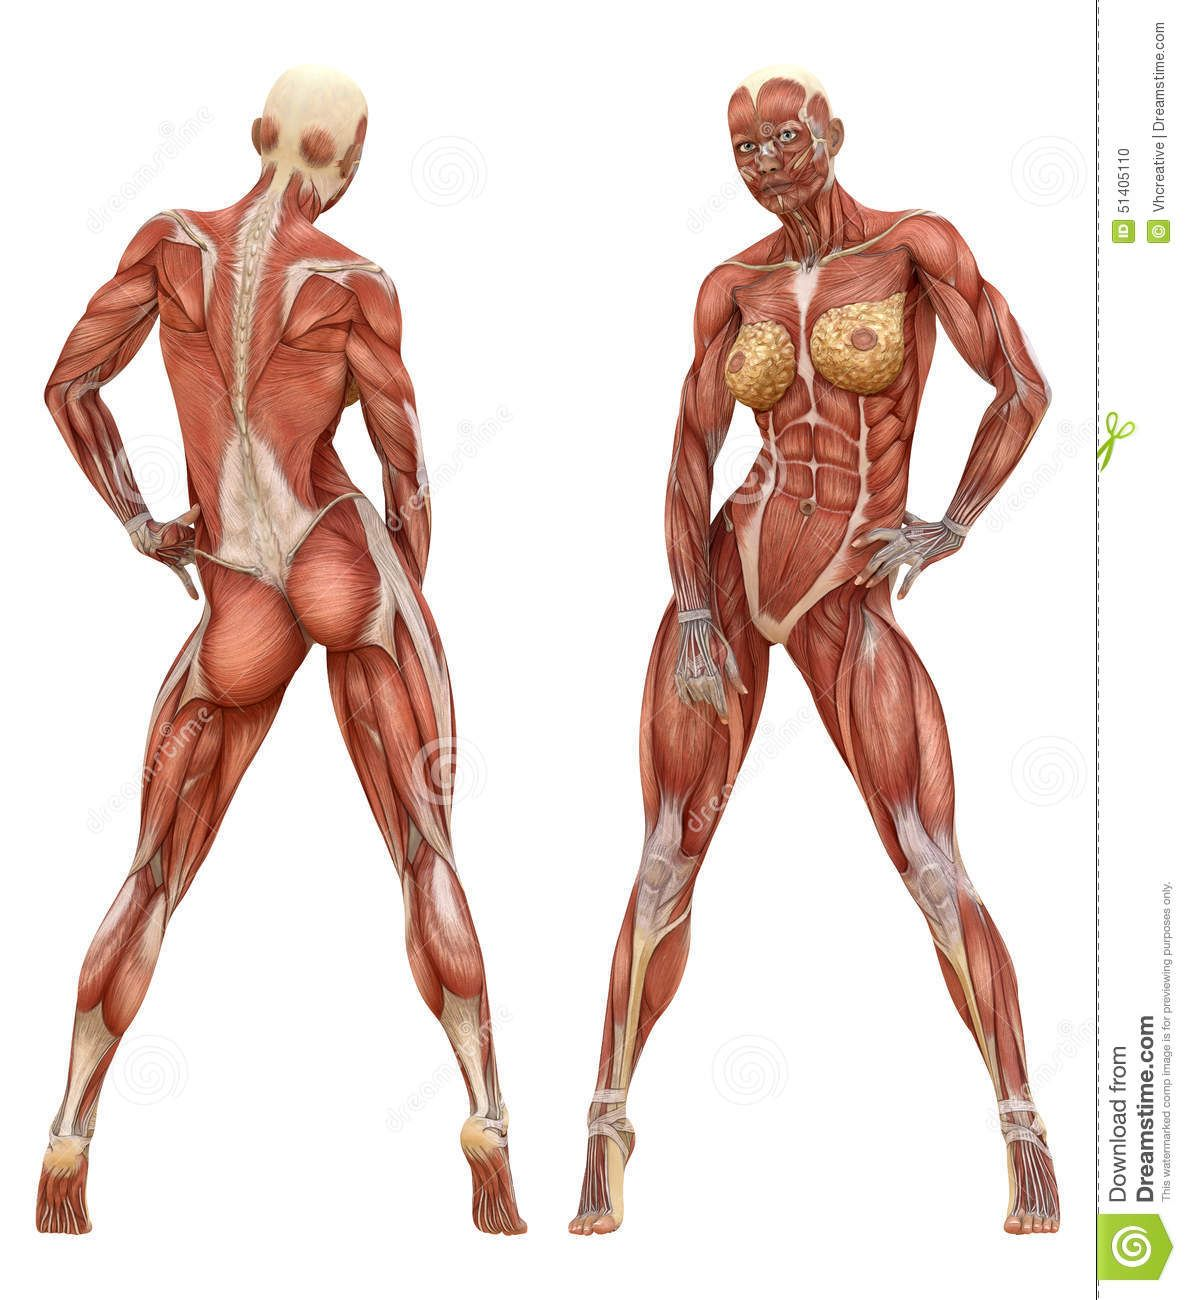 Female Muscular System Anatomy | Human anatomy & character design ...